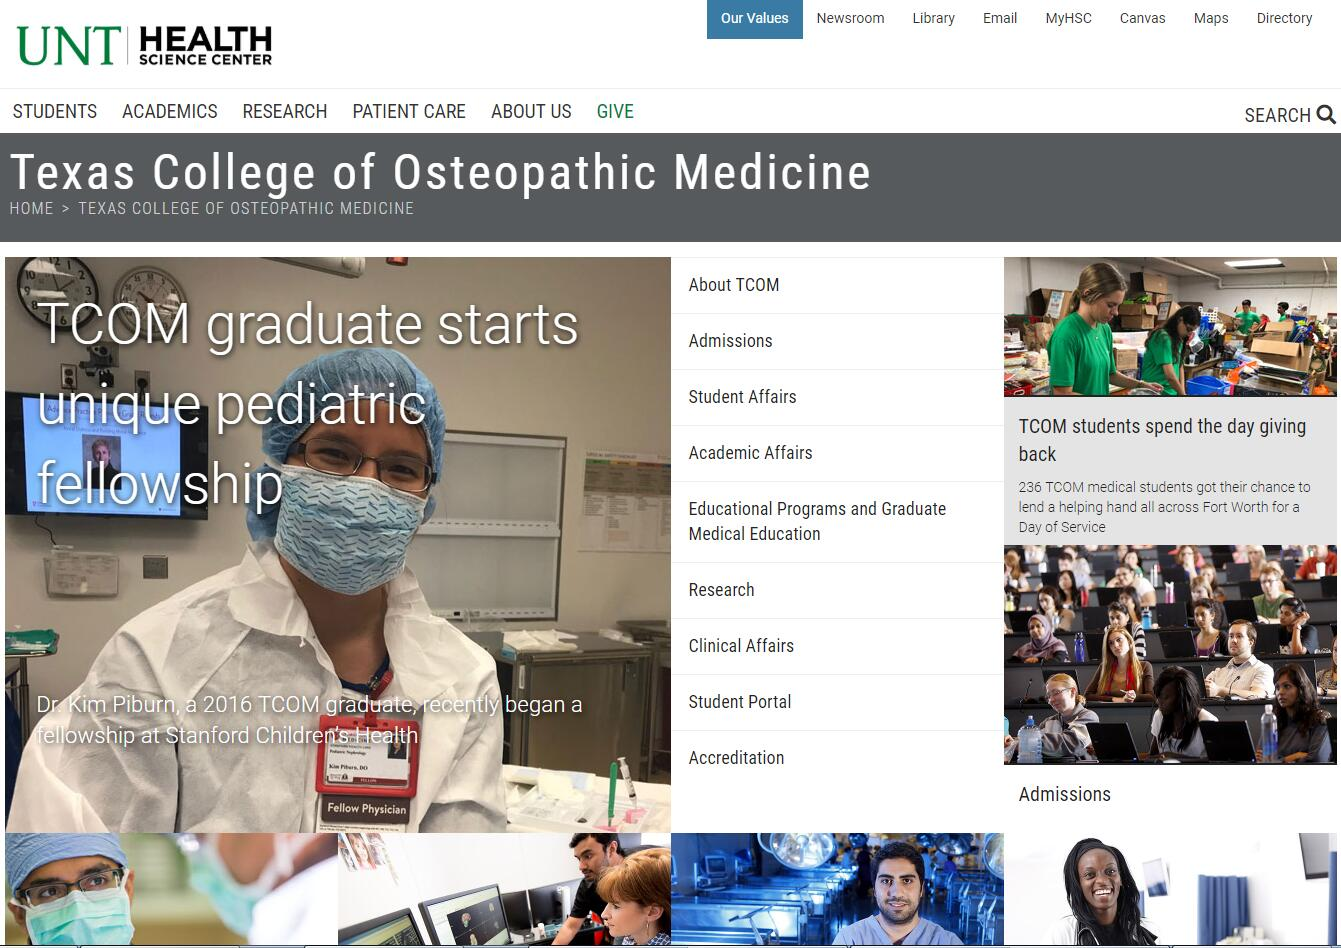 The Texas College of Osteopathic Medicine at University of North Texas Health Science Center